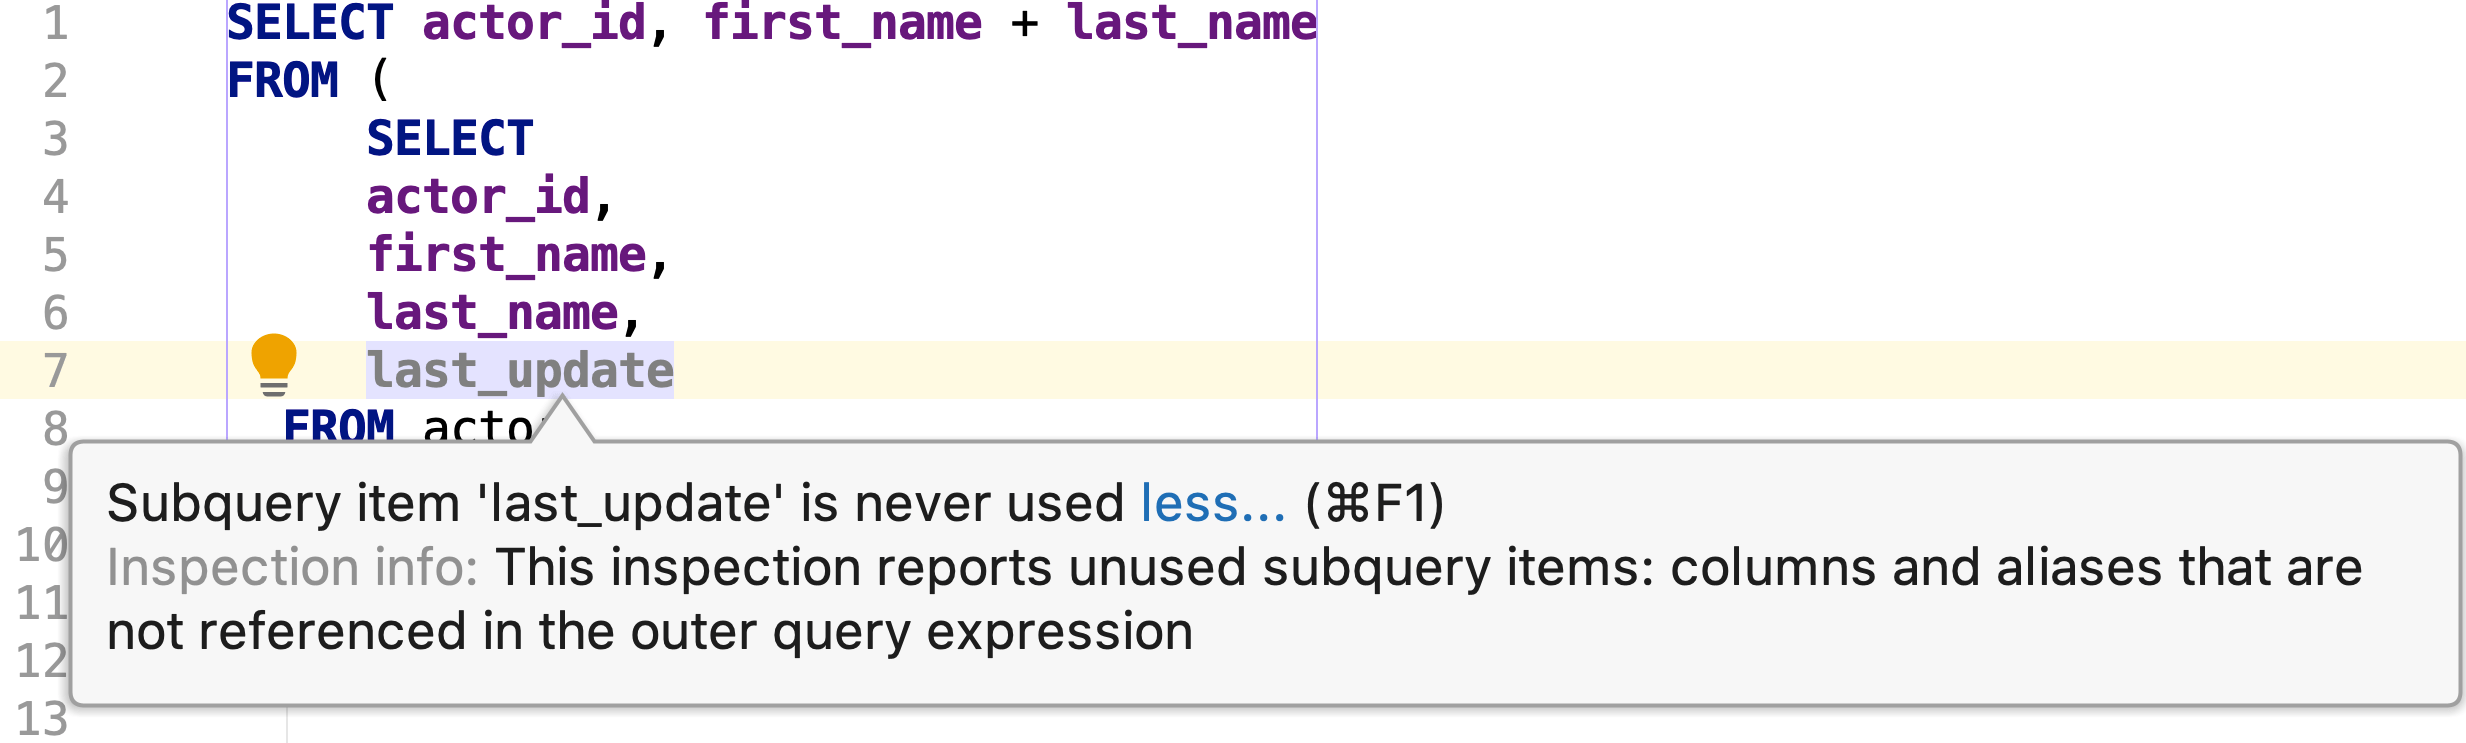 Unused subquery item